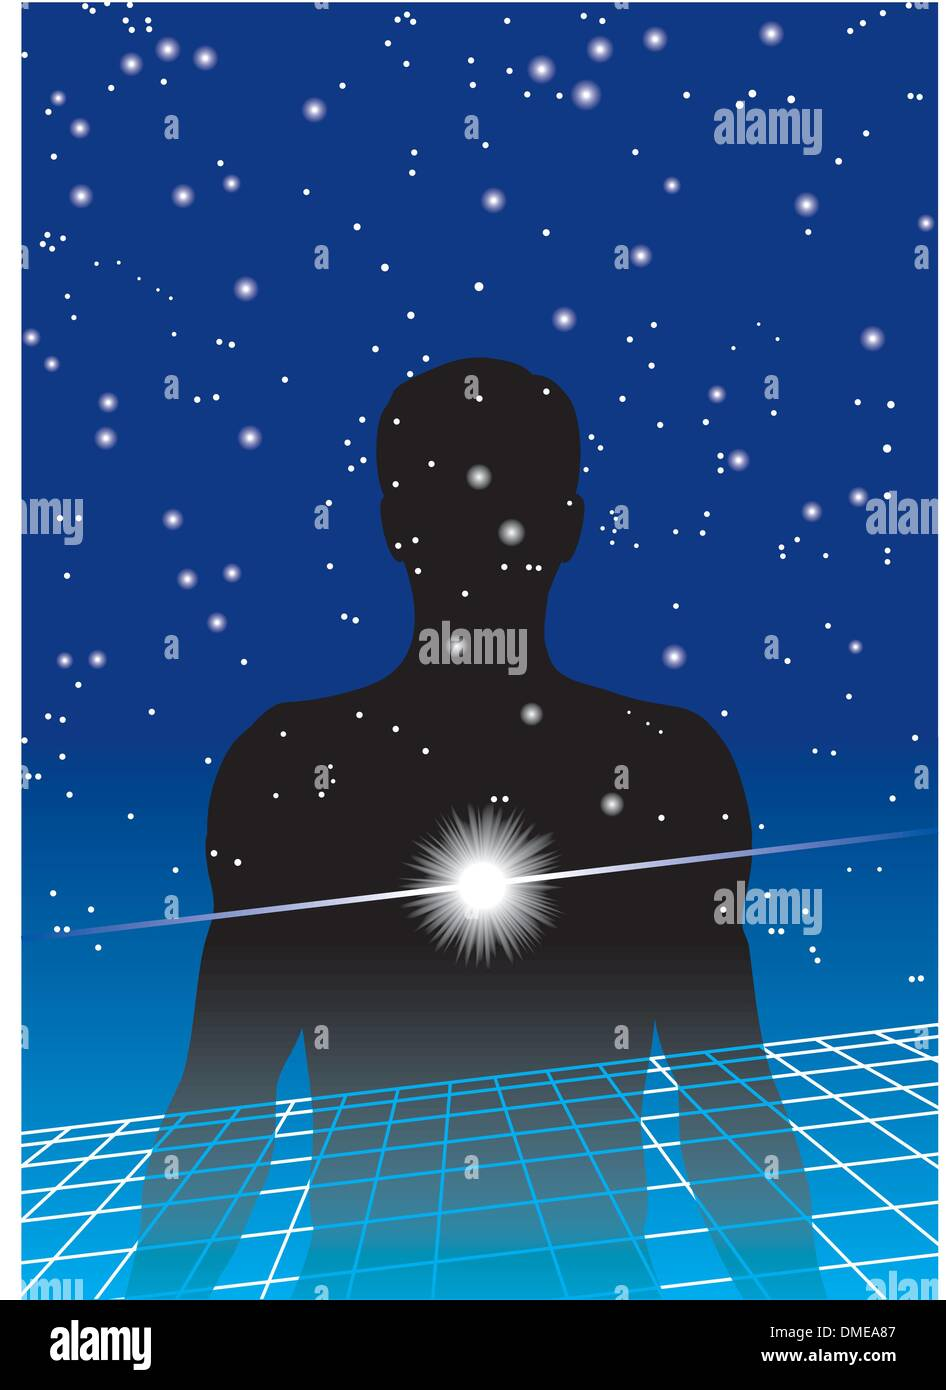 man's silhouette with background of sky and stars - Stock Image